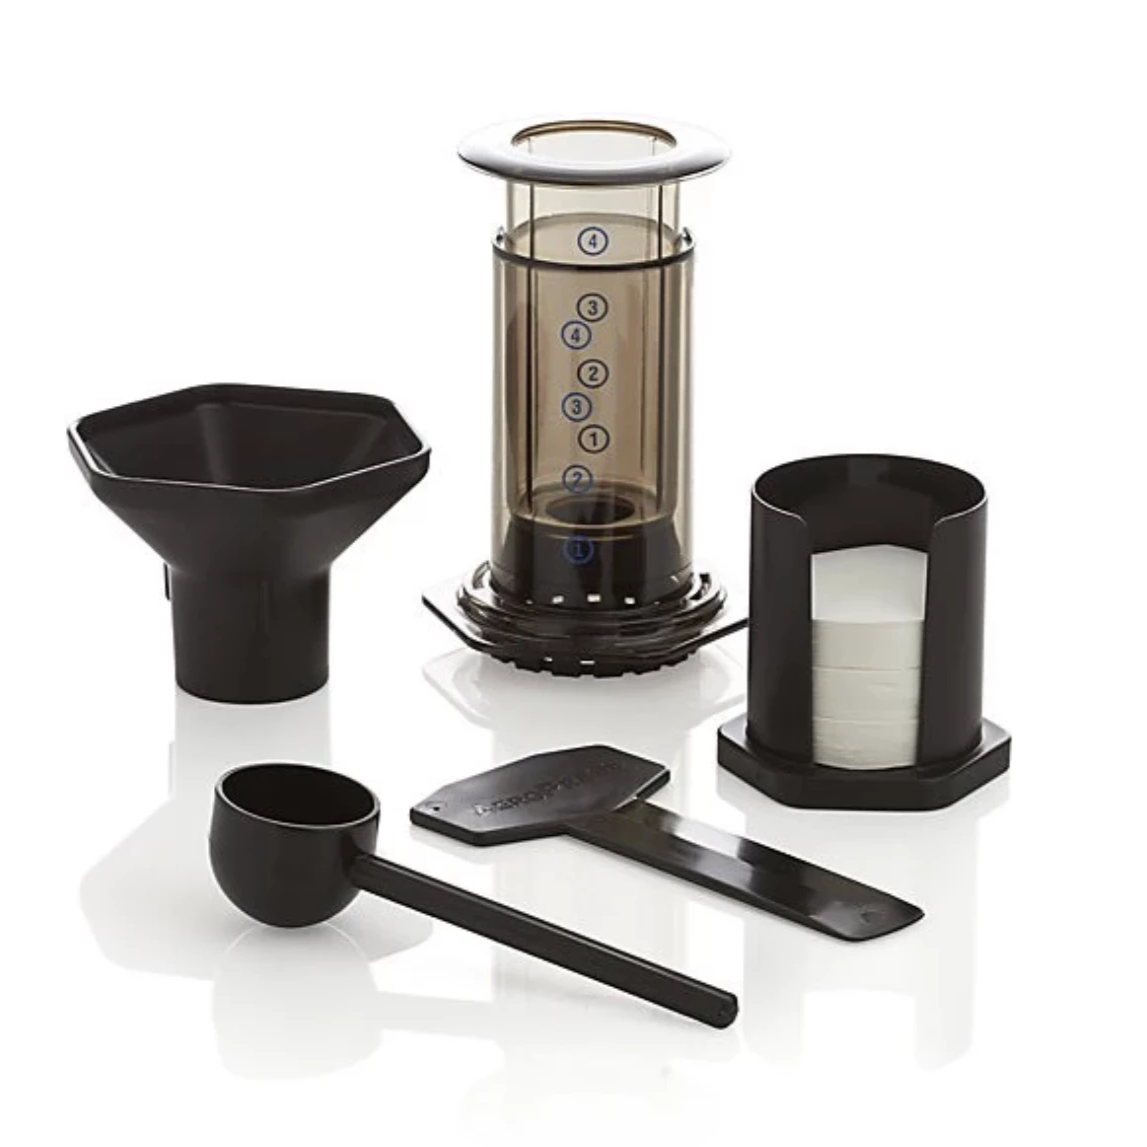 Aeropress and filters for RoosRoast Coffee